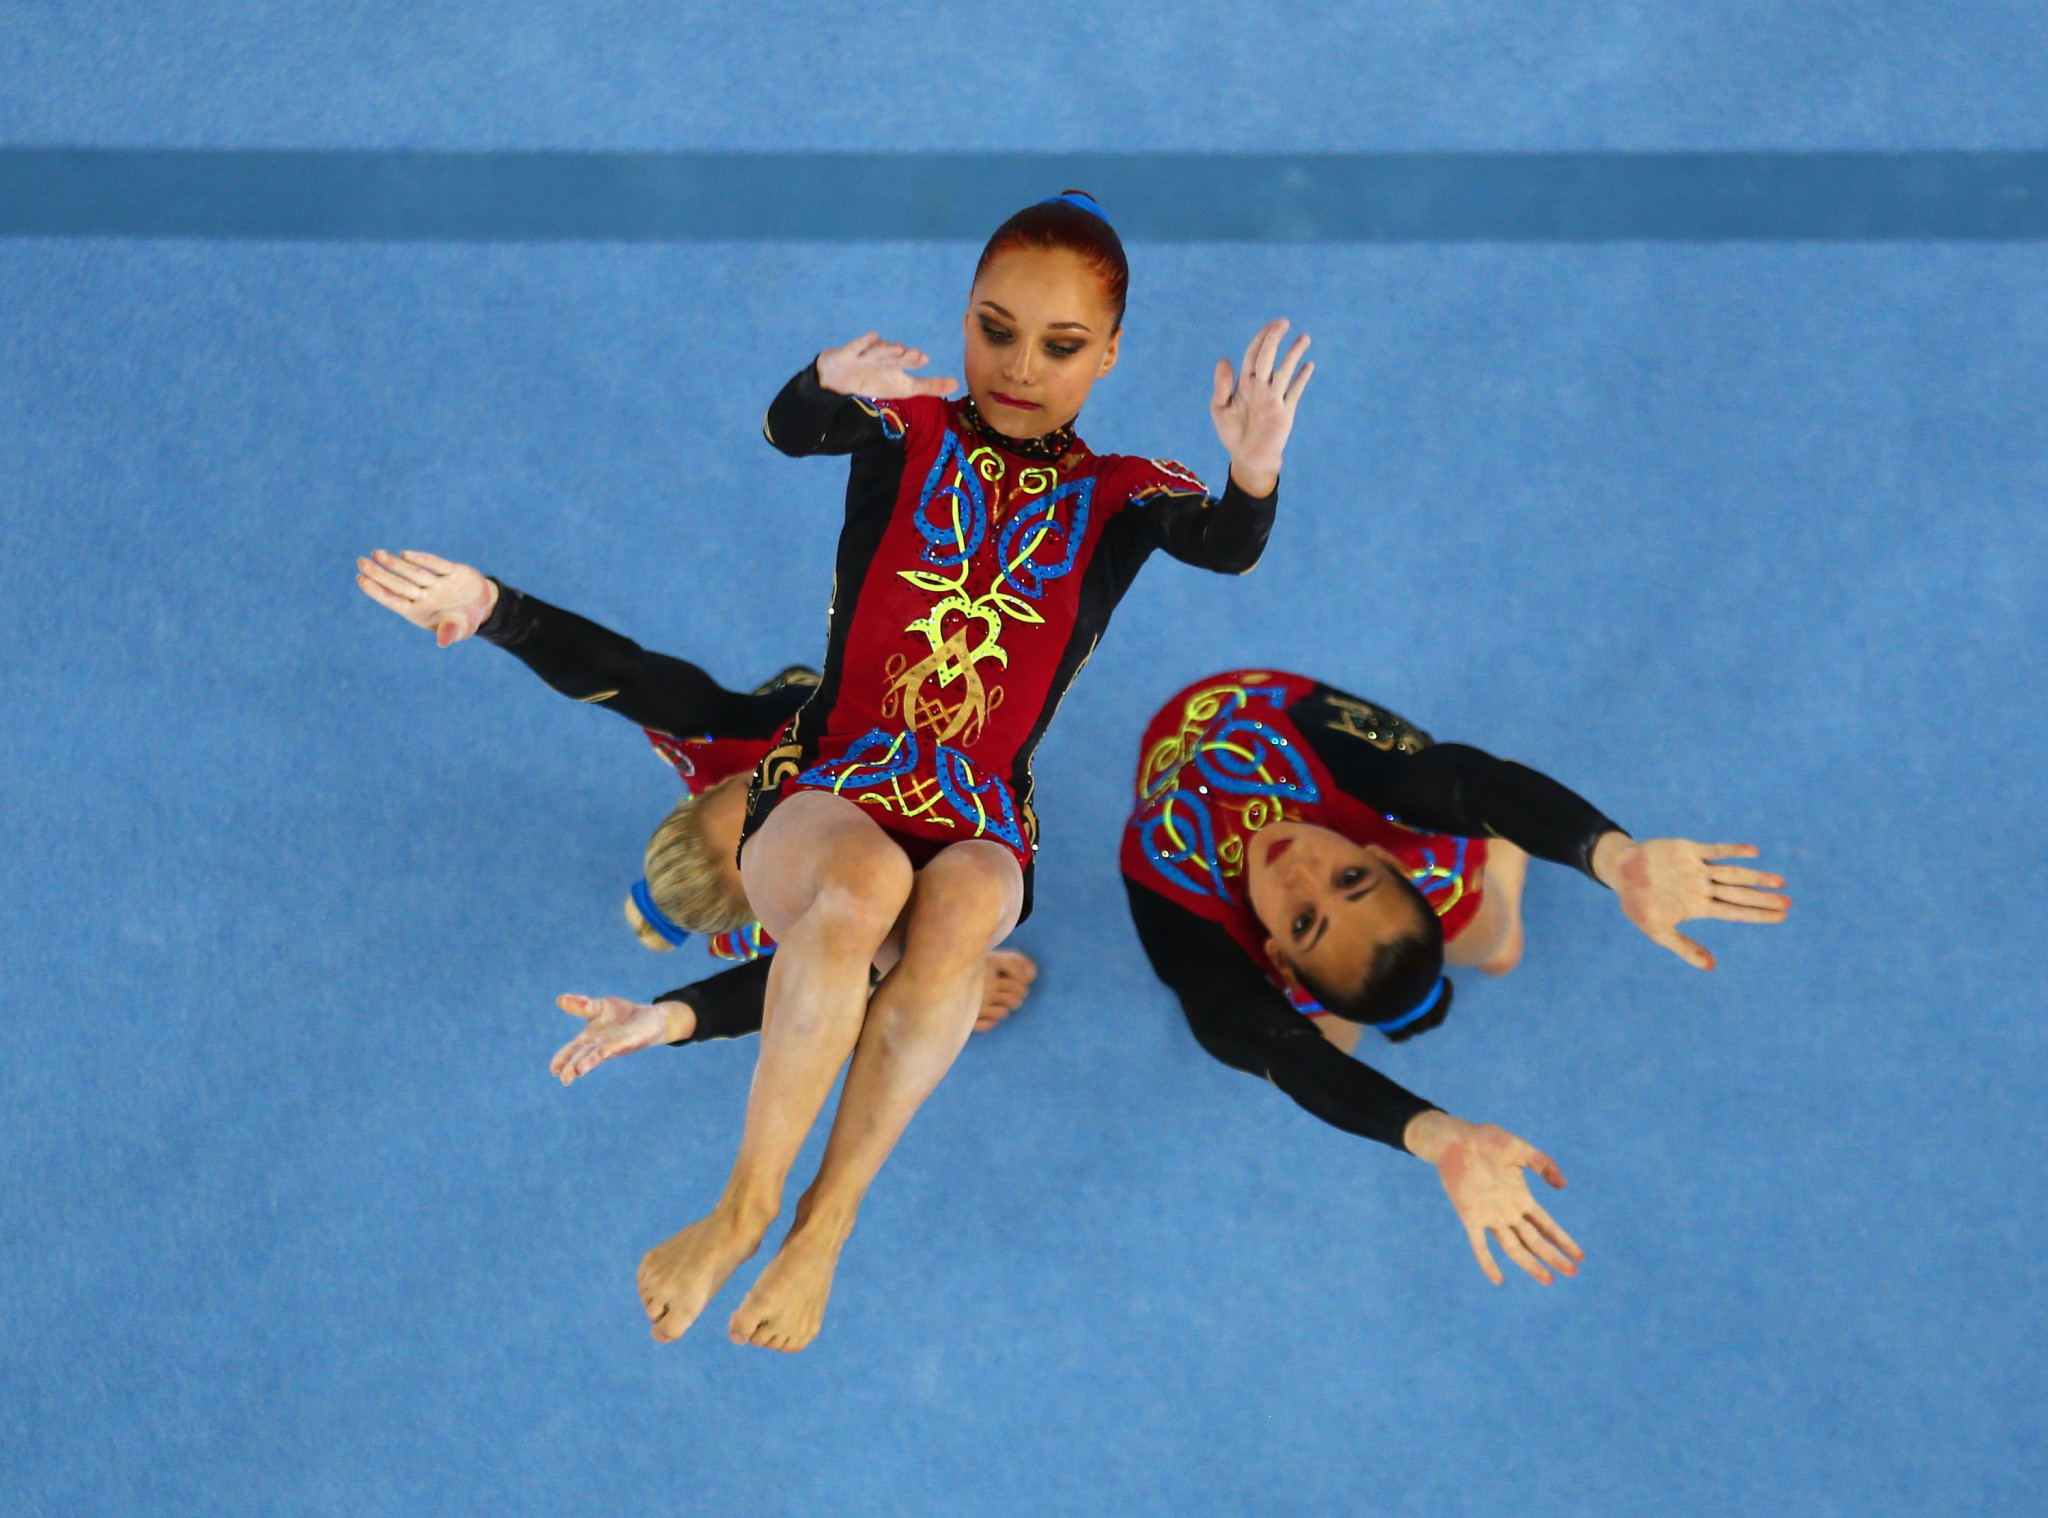 Belarus won gold and silver medals in the women's group final at the FIG  Acrobatic World Cup in Las Vegas. ©Getty Images